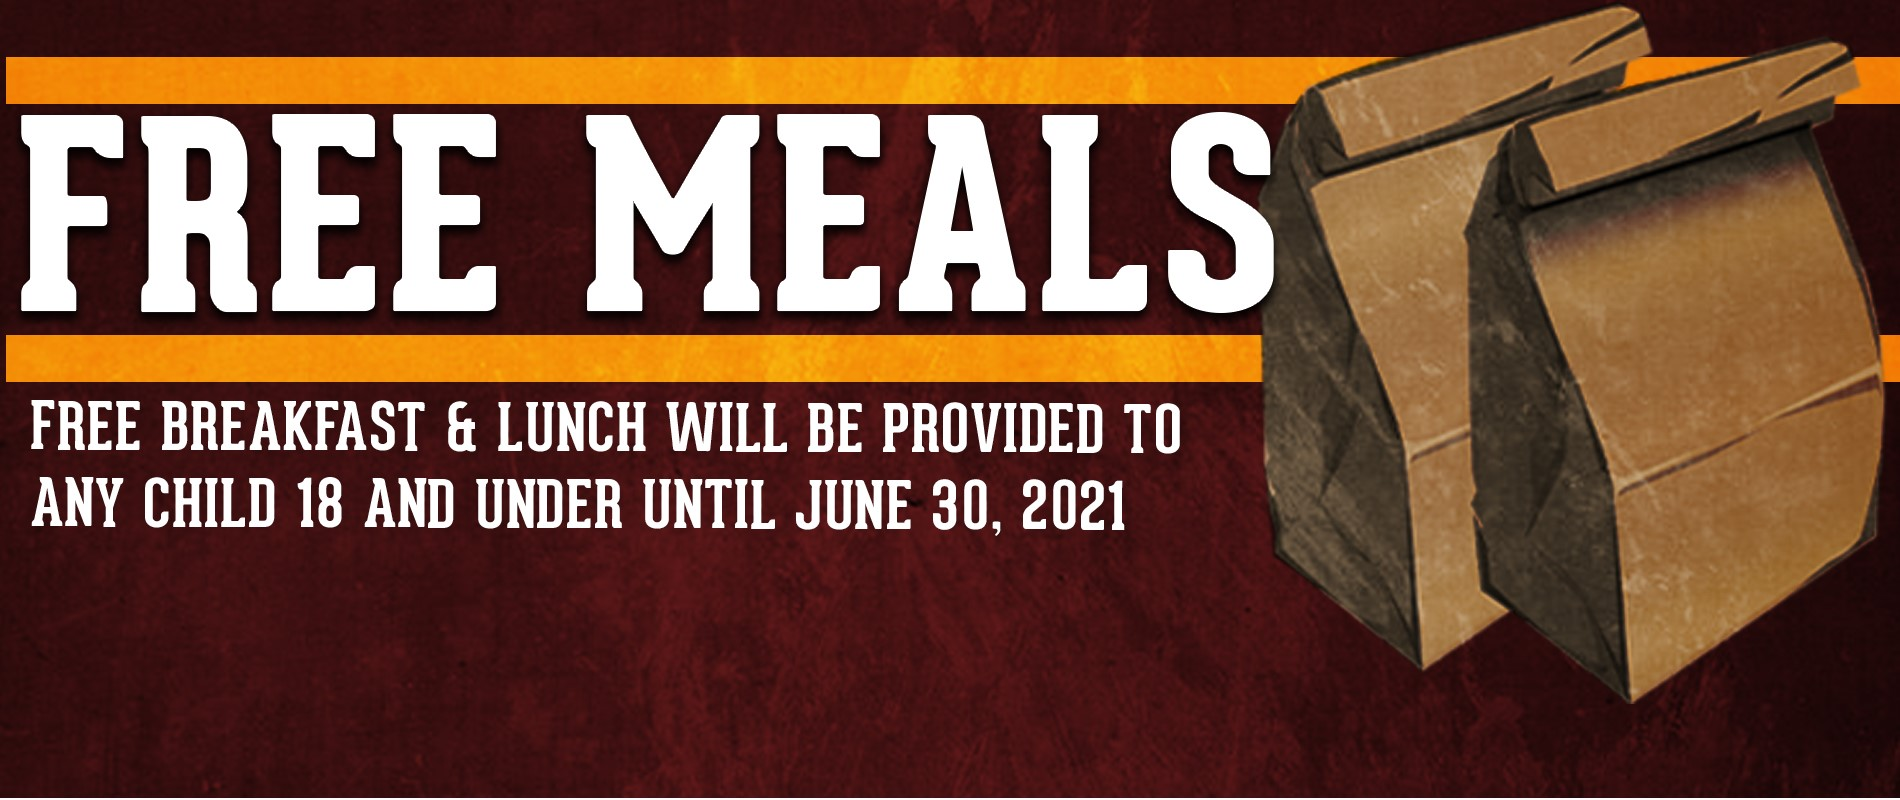 Free Meals for any child 18 and under until June 30, 2021